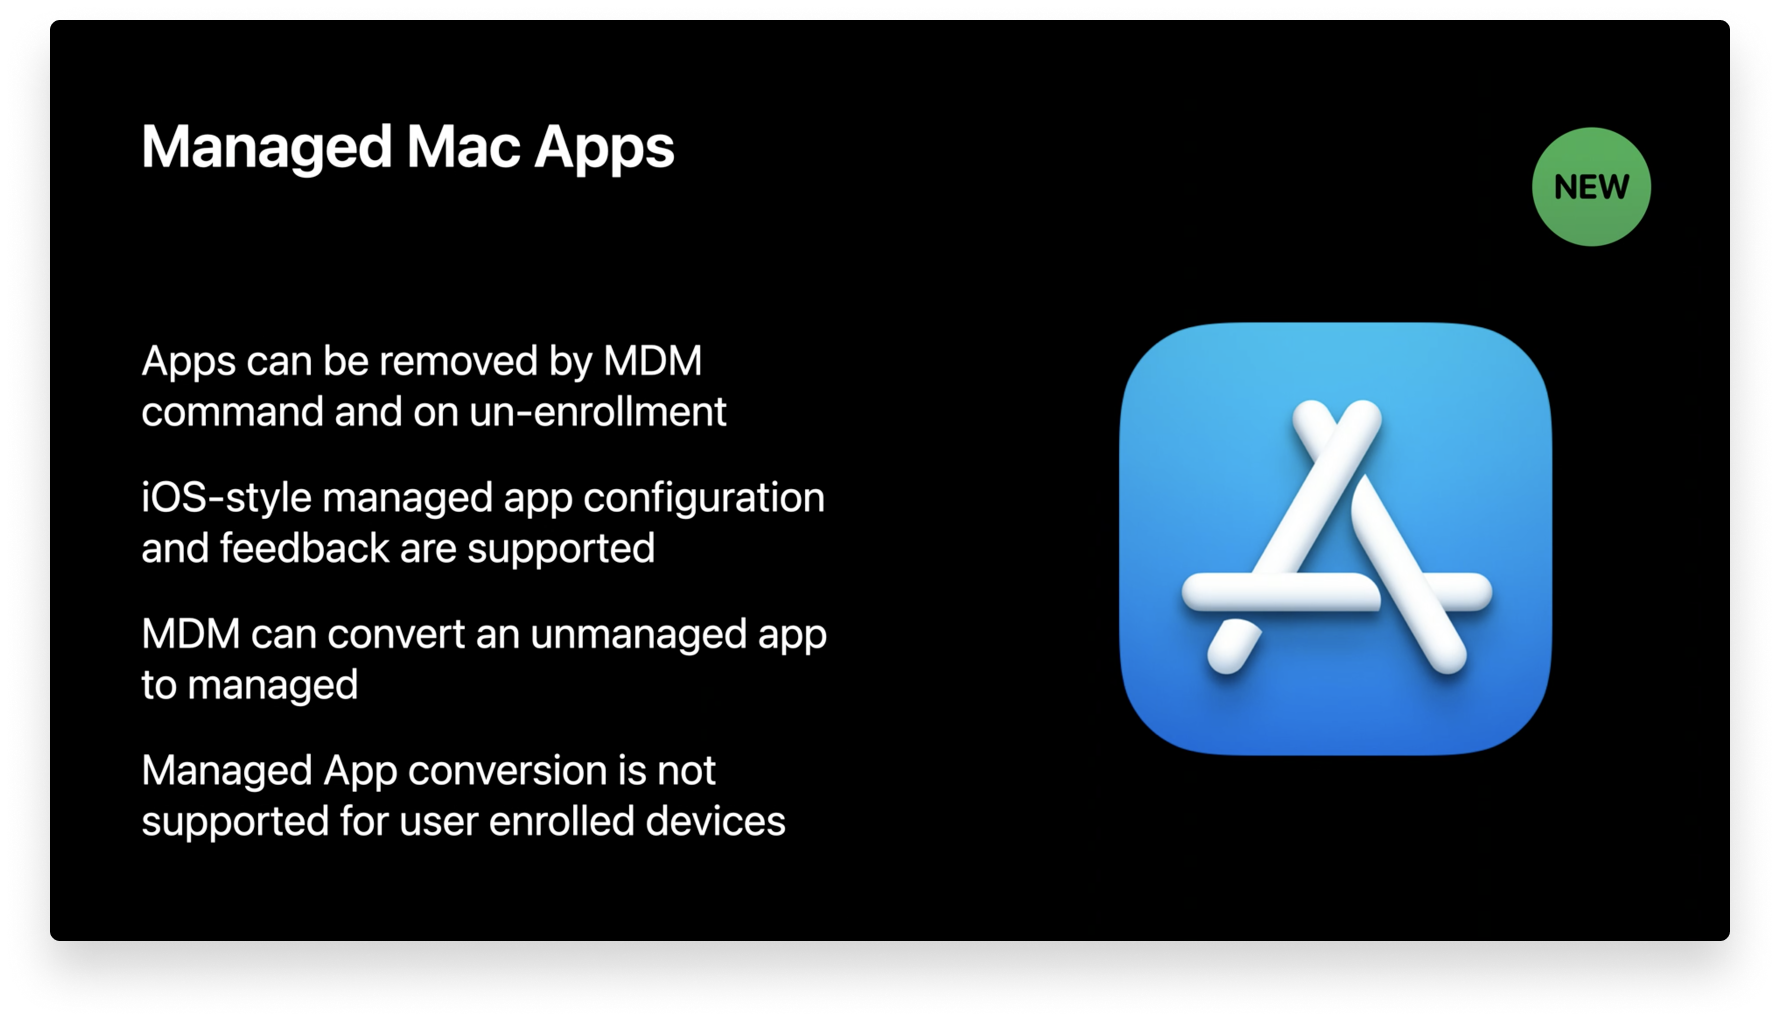 managed mac apps